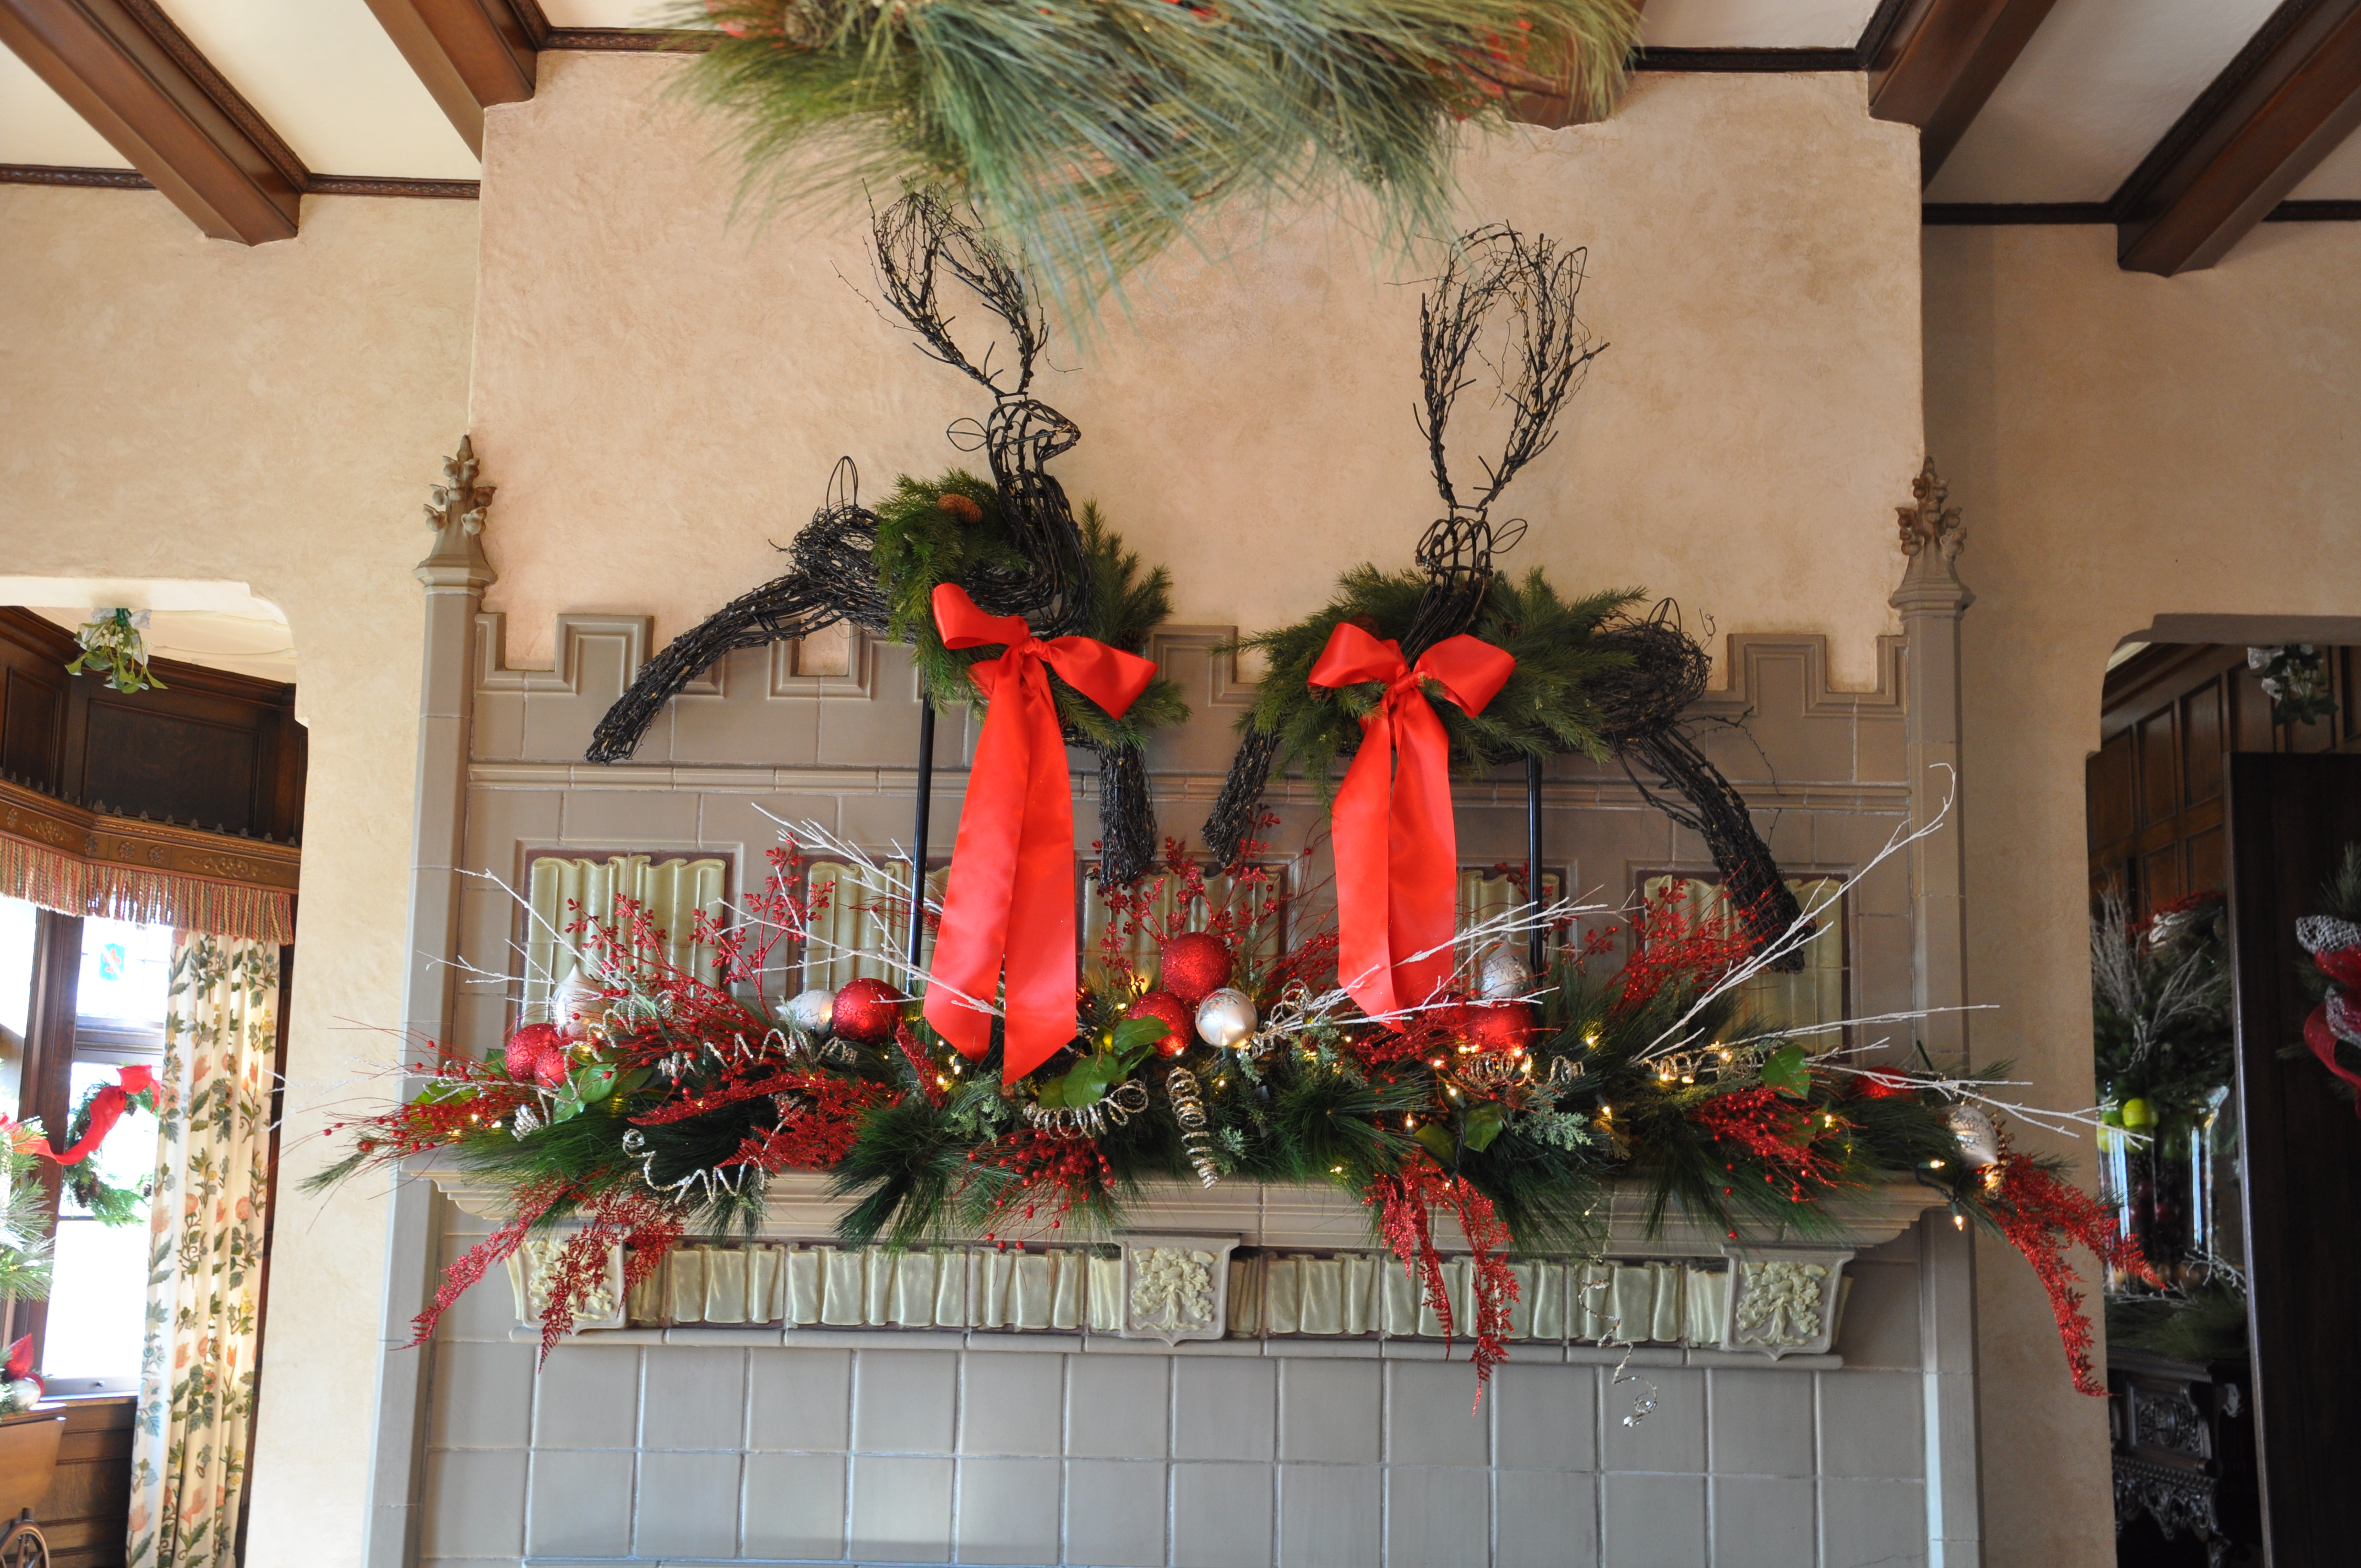 HWoliday Walk Mantel dressed ith deer and red decor